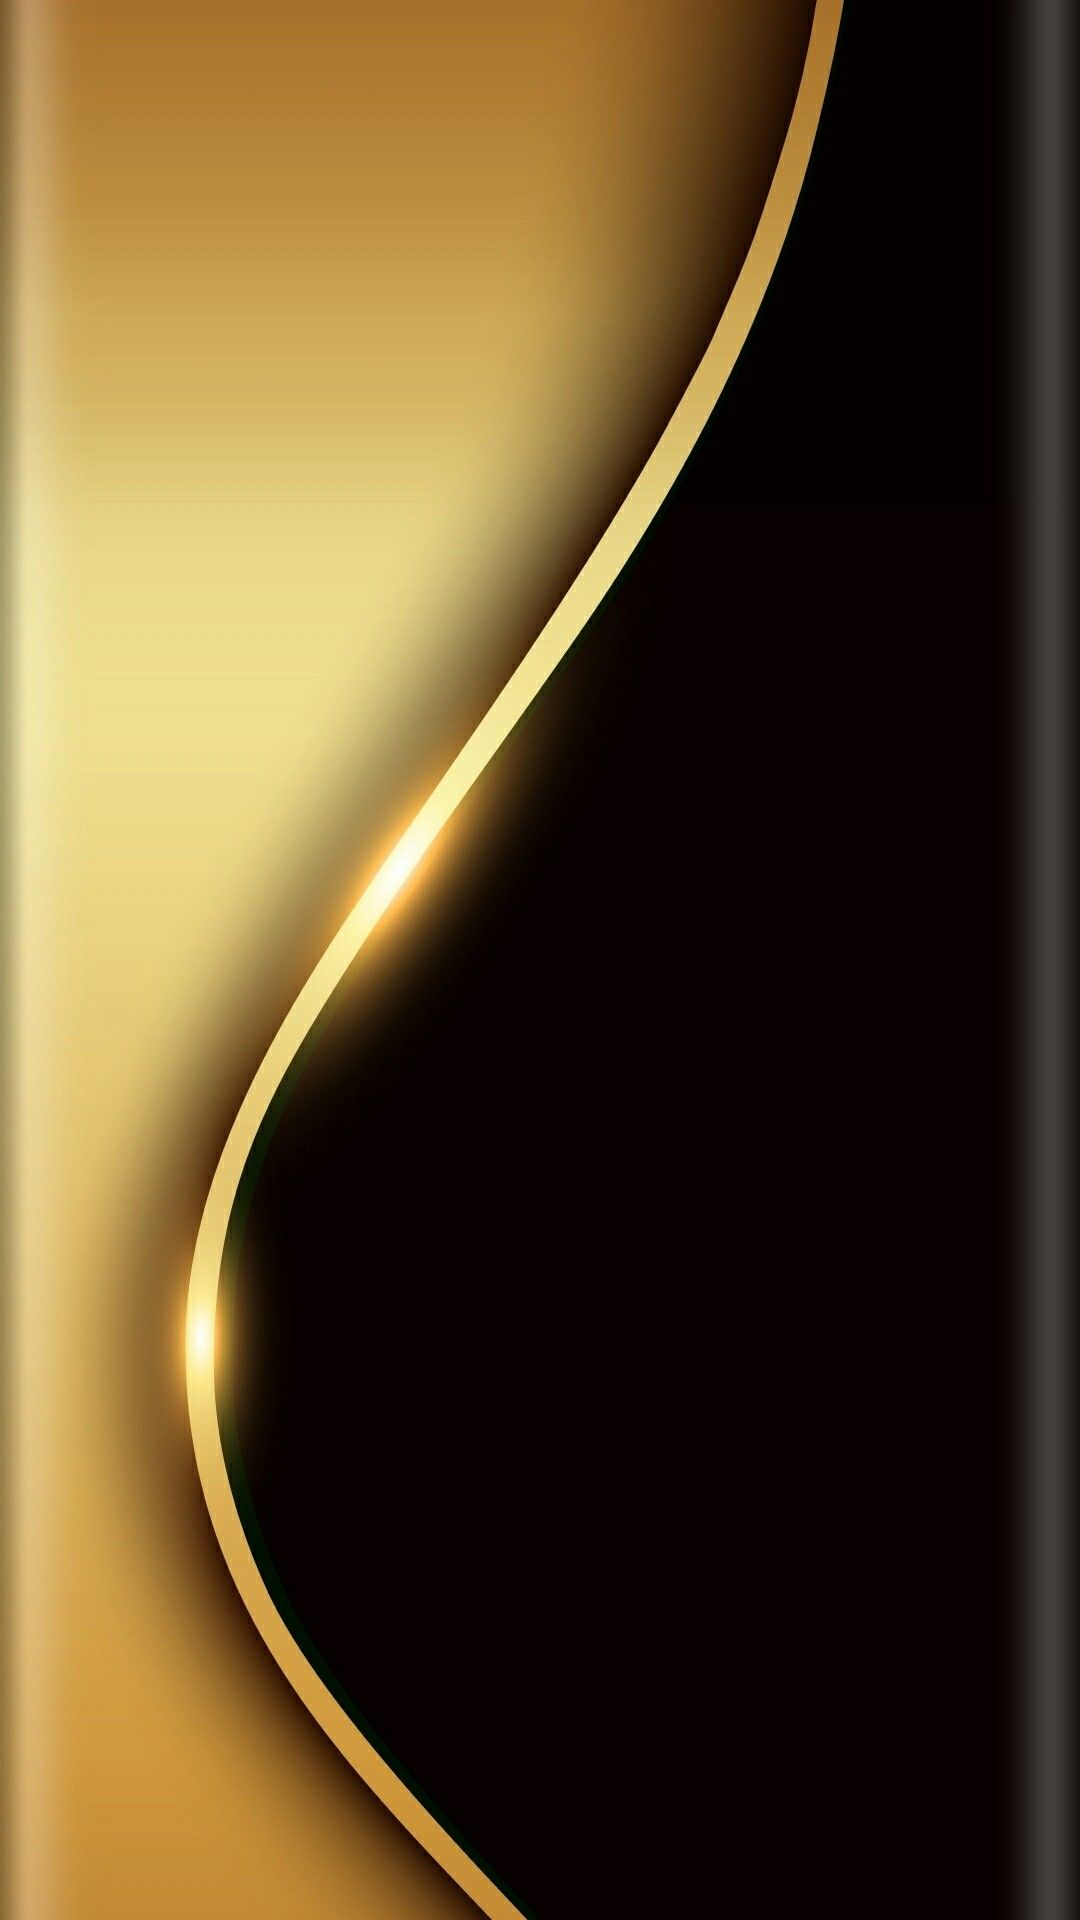 gold wallpaper wallpaper backgrounds wallpaper shelves iphone 5s wallpaper cellphone wallpaper wallpapers android gig poster painting abstract